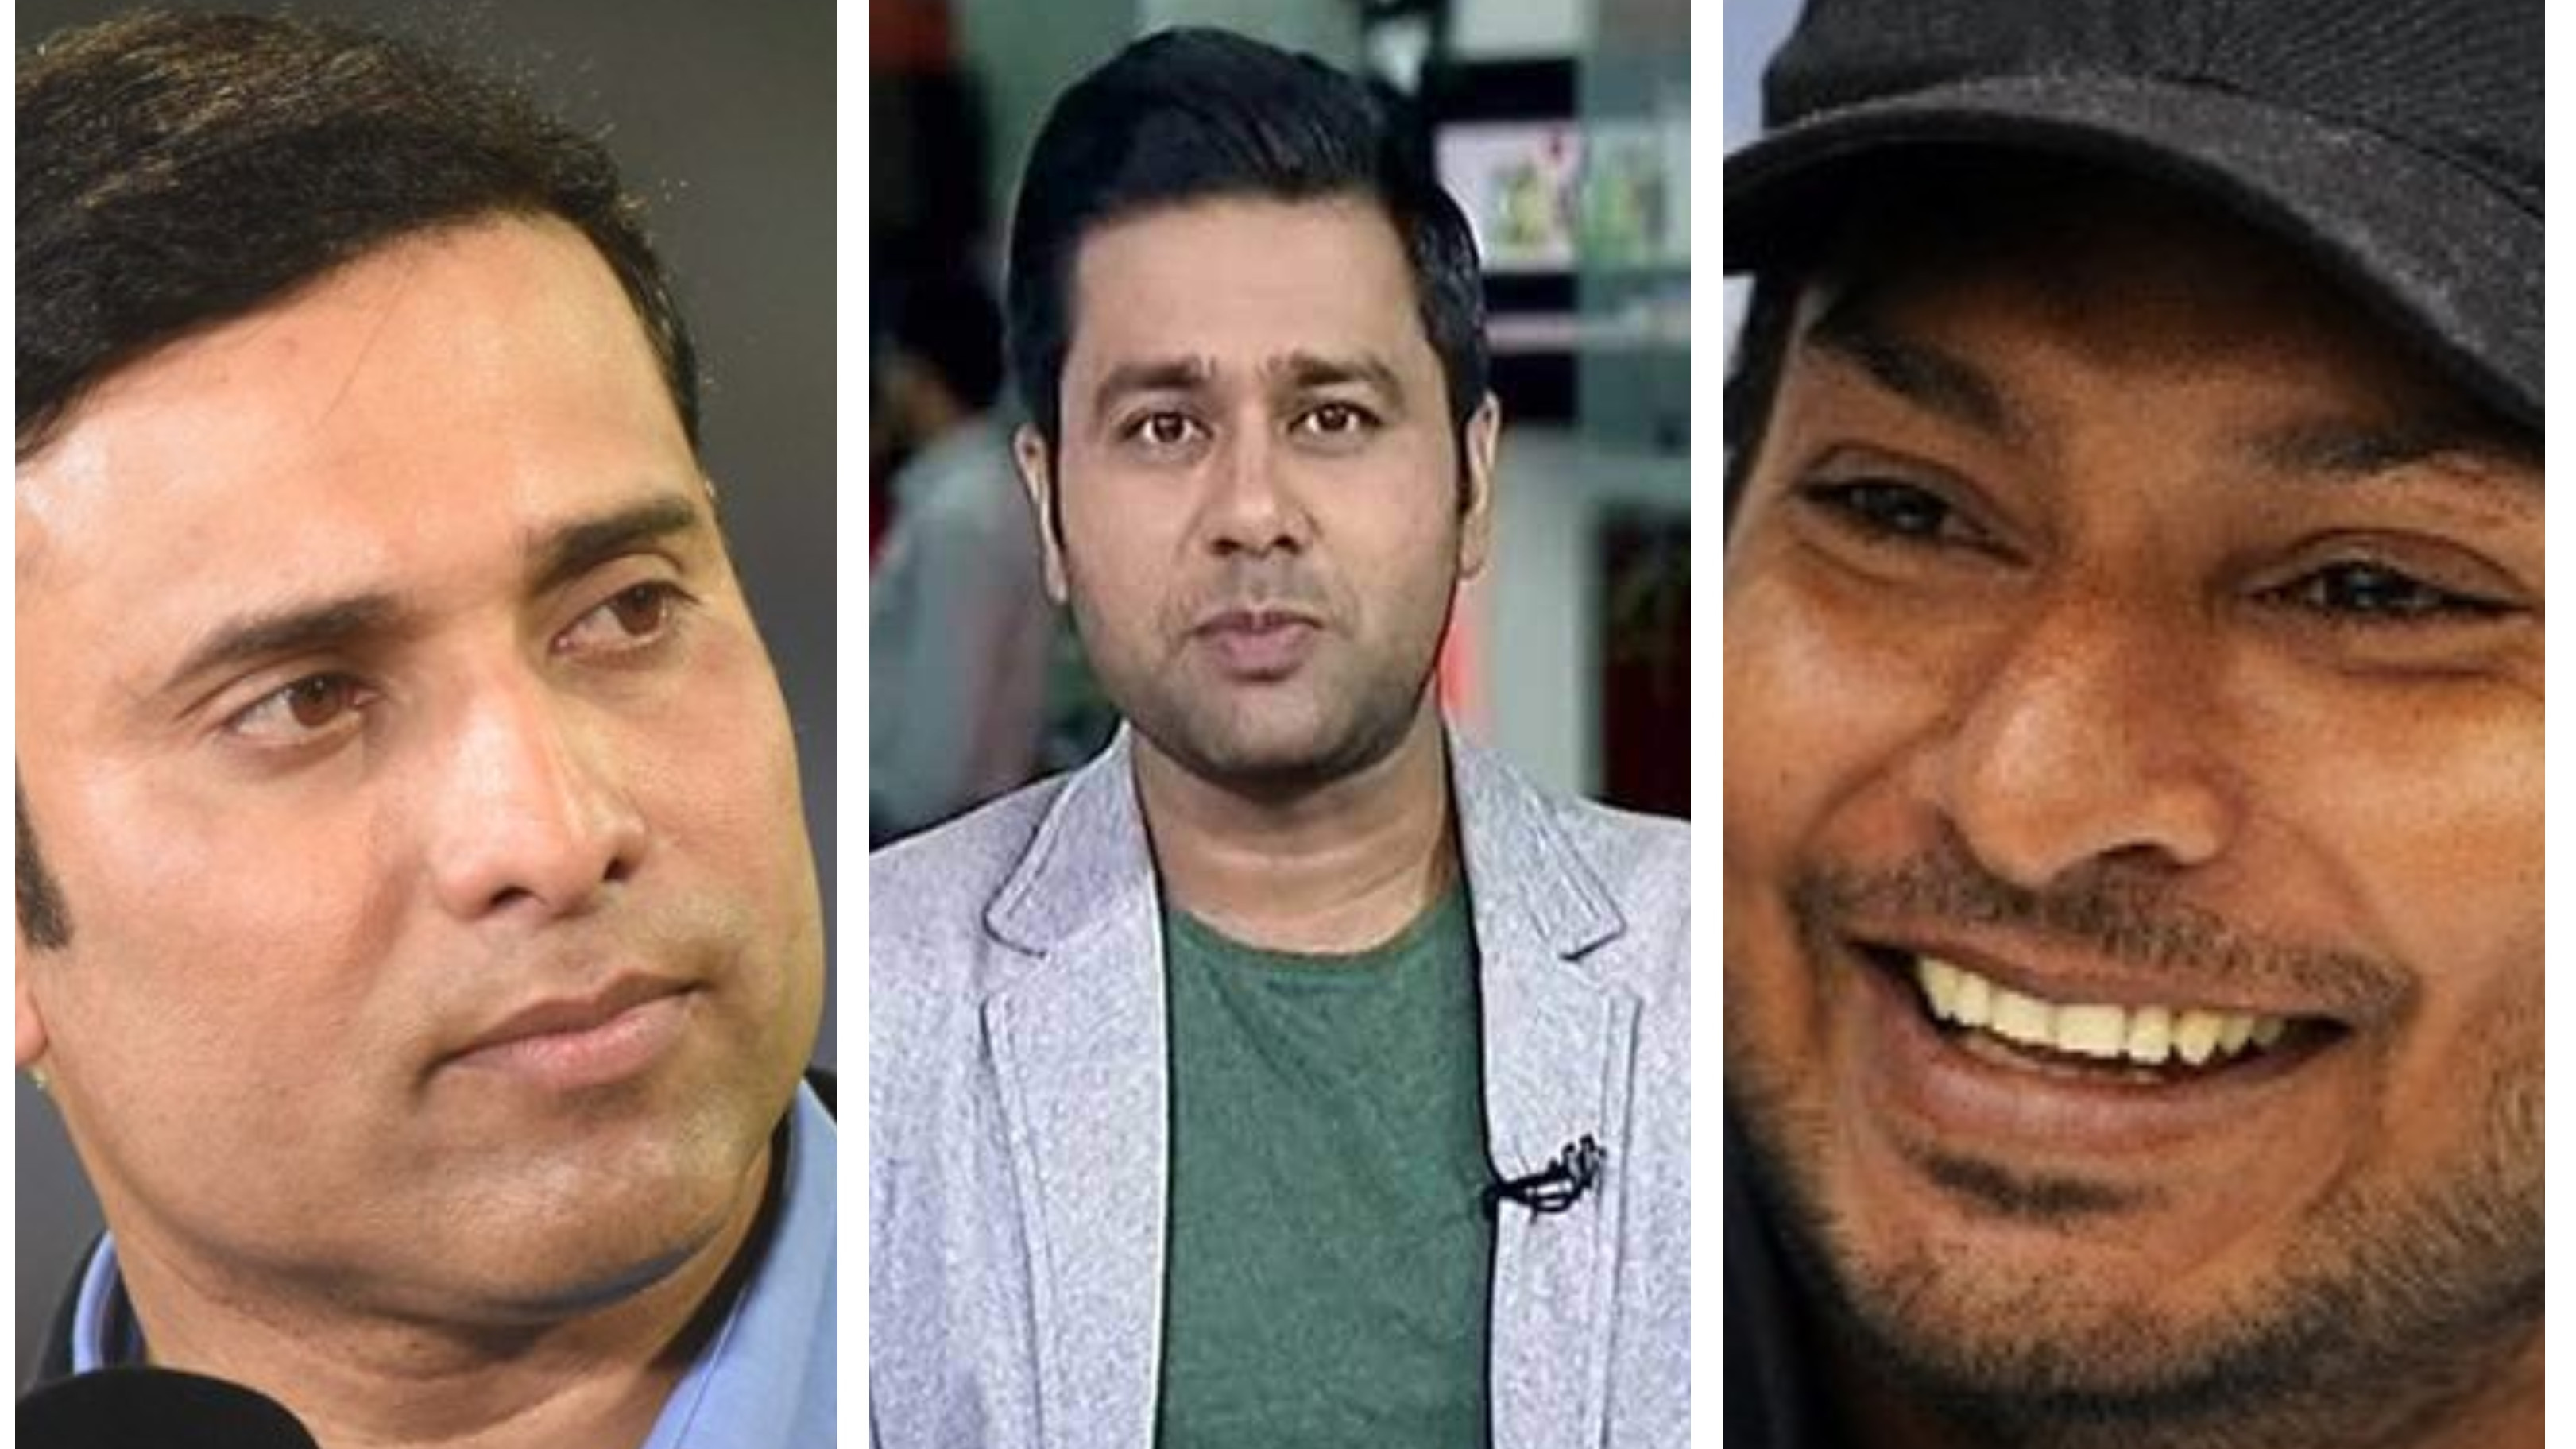 VVS Laxman interacts with Aakash Chopra and Kumar Sangakkara in a funny Twitter conversation